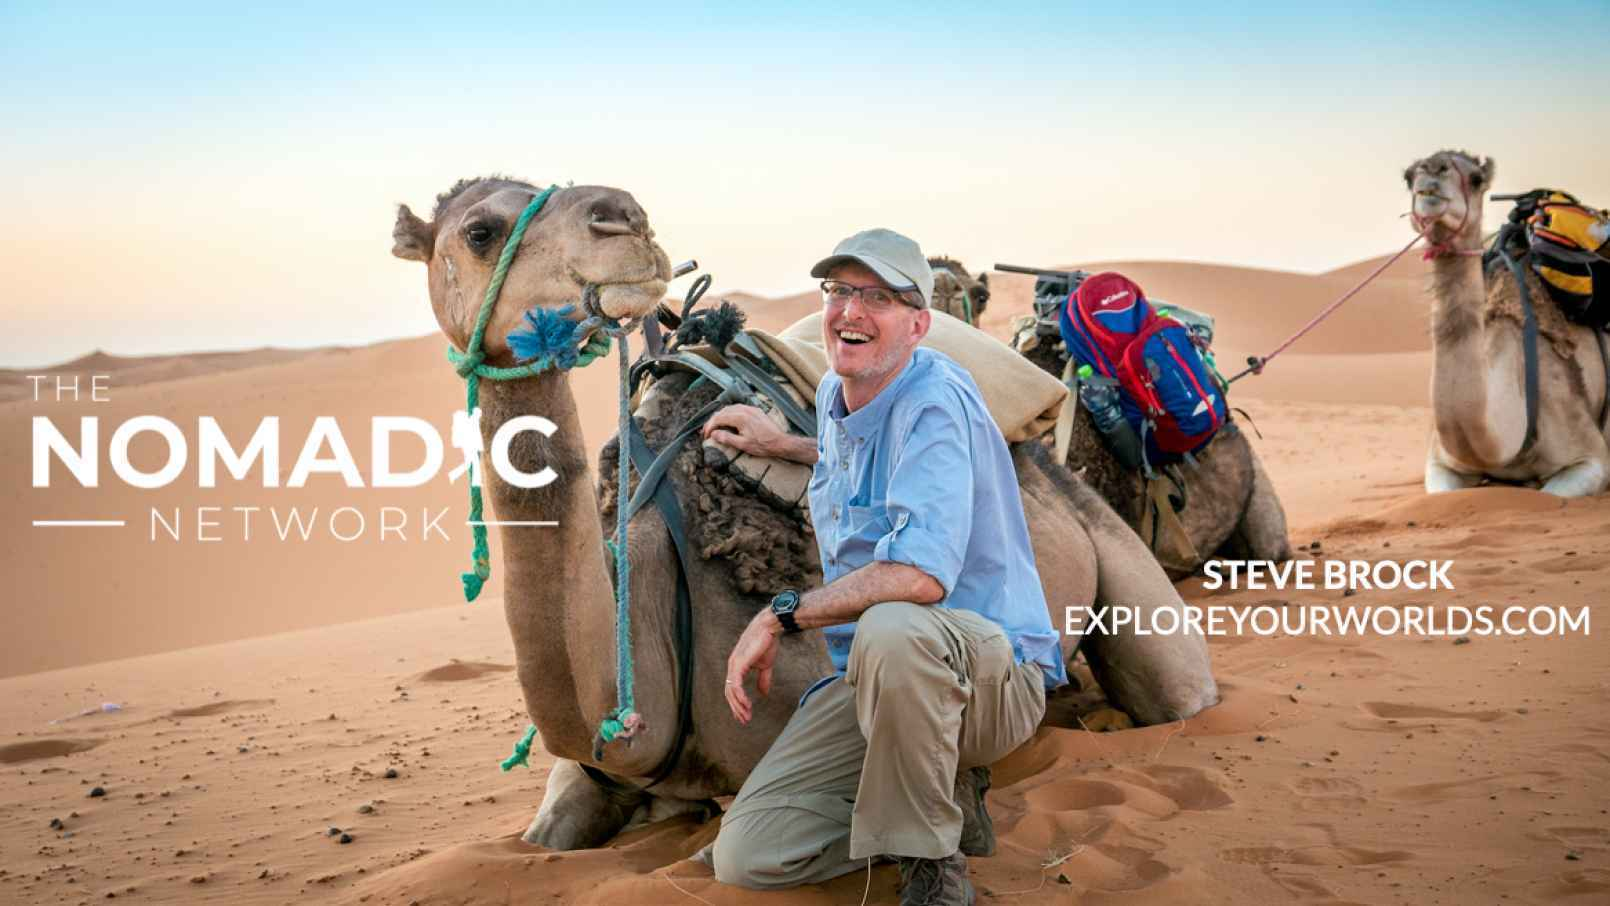 Steve Brock traveling with camels in the desert